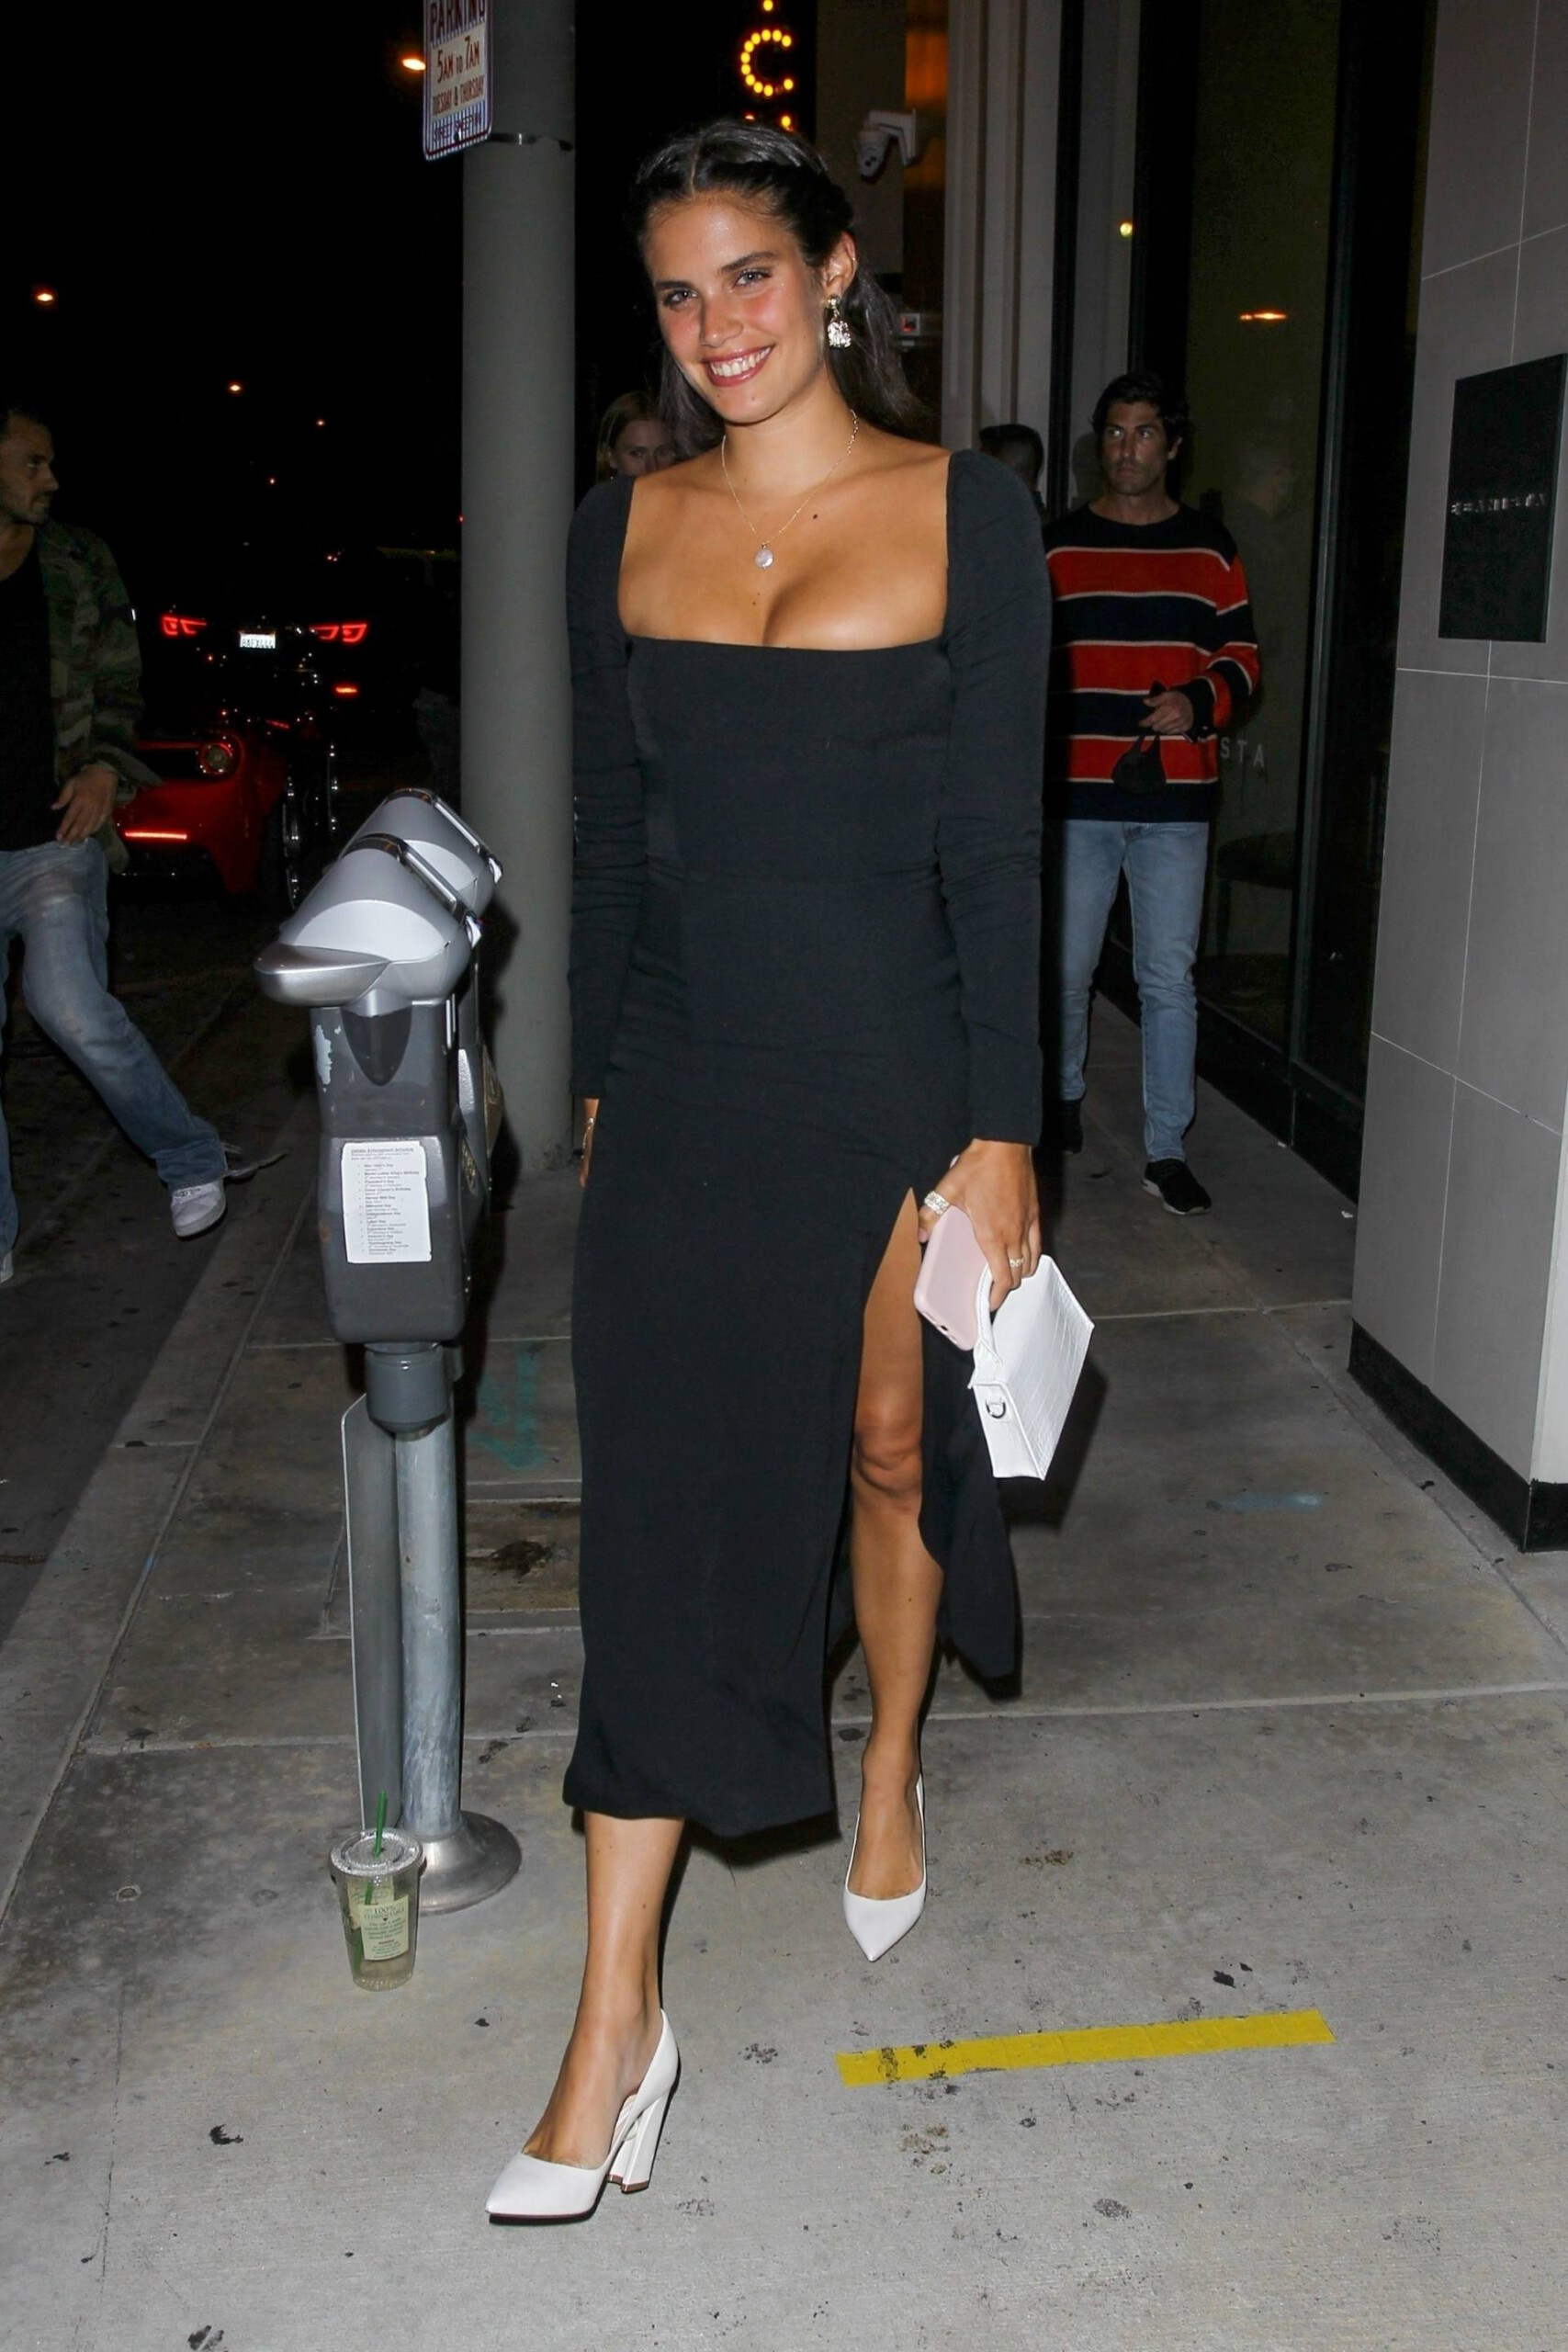 Sara Sampaio – Beautiful In Sexy Black Dress At Catch Restaurant In West Hollywood 0013